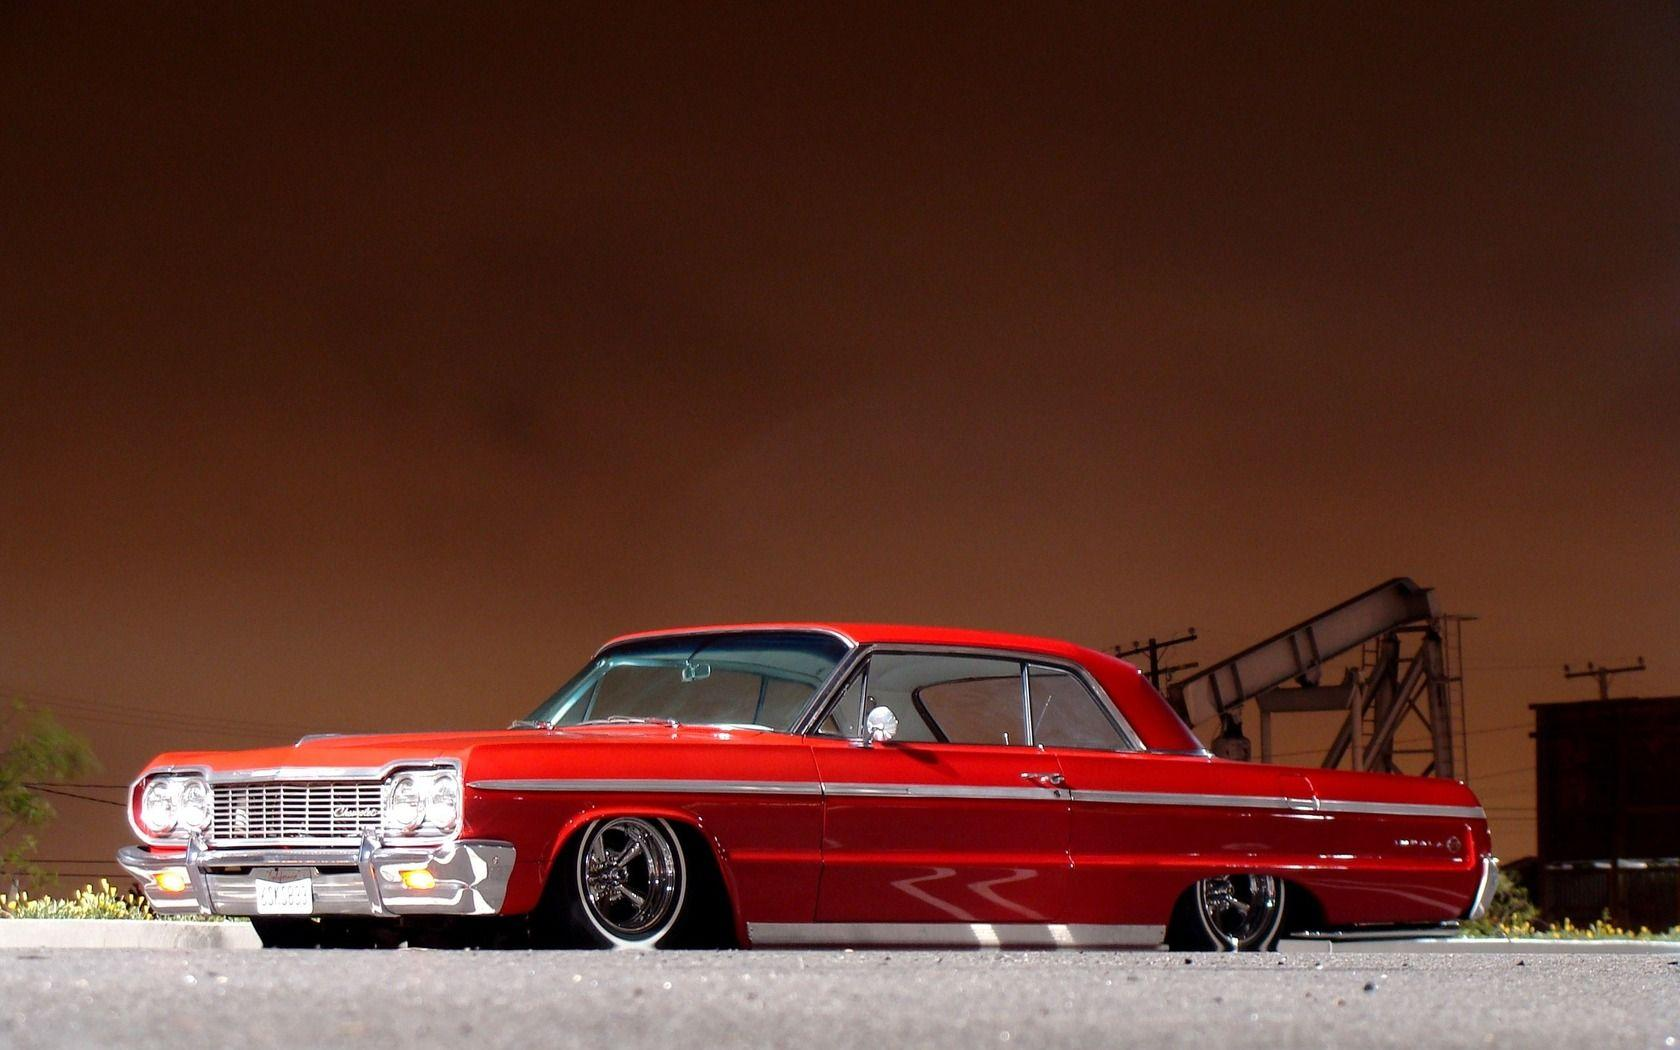 Lowrider Cars Wallpapers - Wallpapers Browse